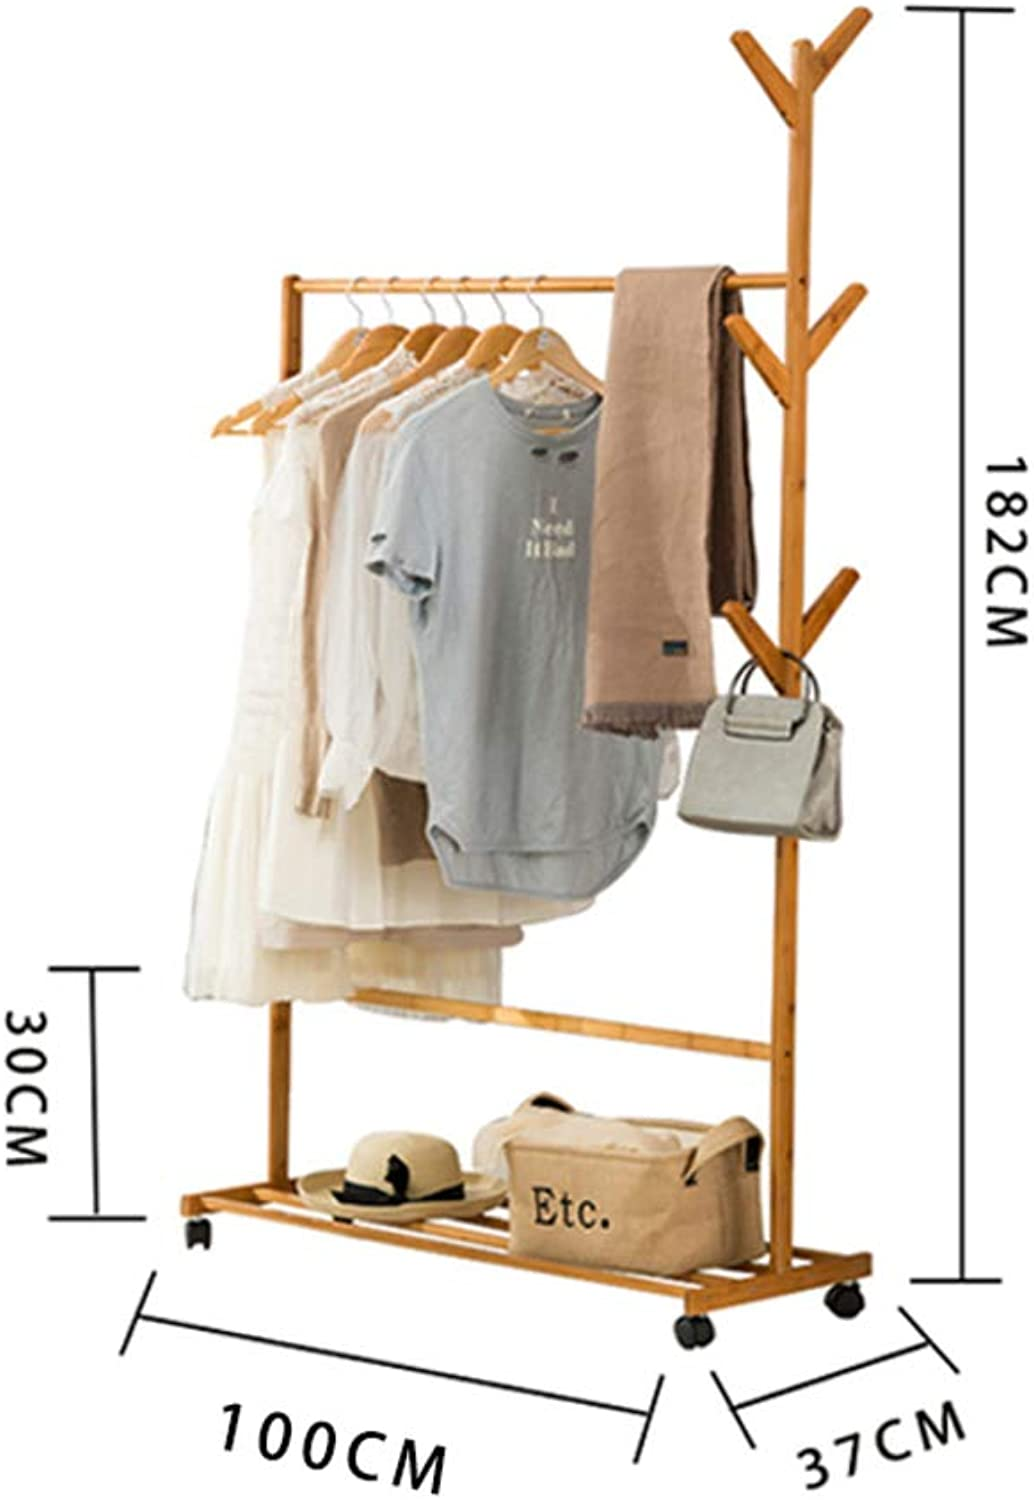 Bamboo Coat Rack,Coat Tree Free Standing,Simple Garment Rack 6 Hooks for Jacket Purse Scarf Rack Easy Assembly-C 100x37x182cm(39x15x72inch)